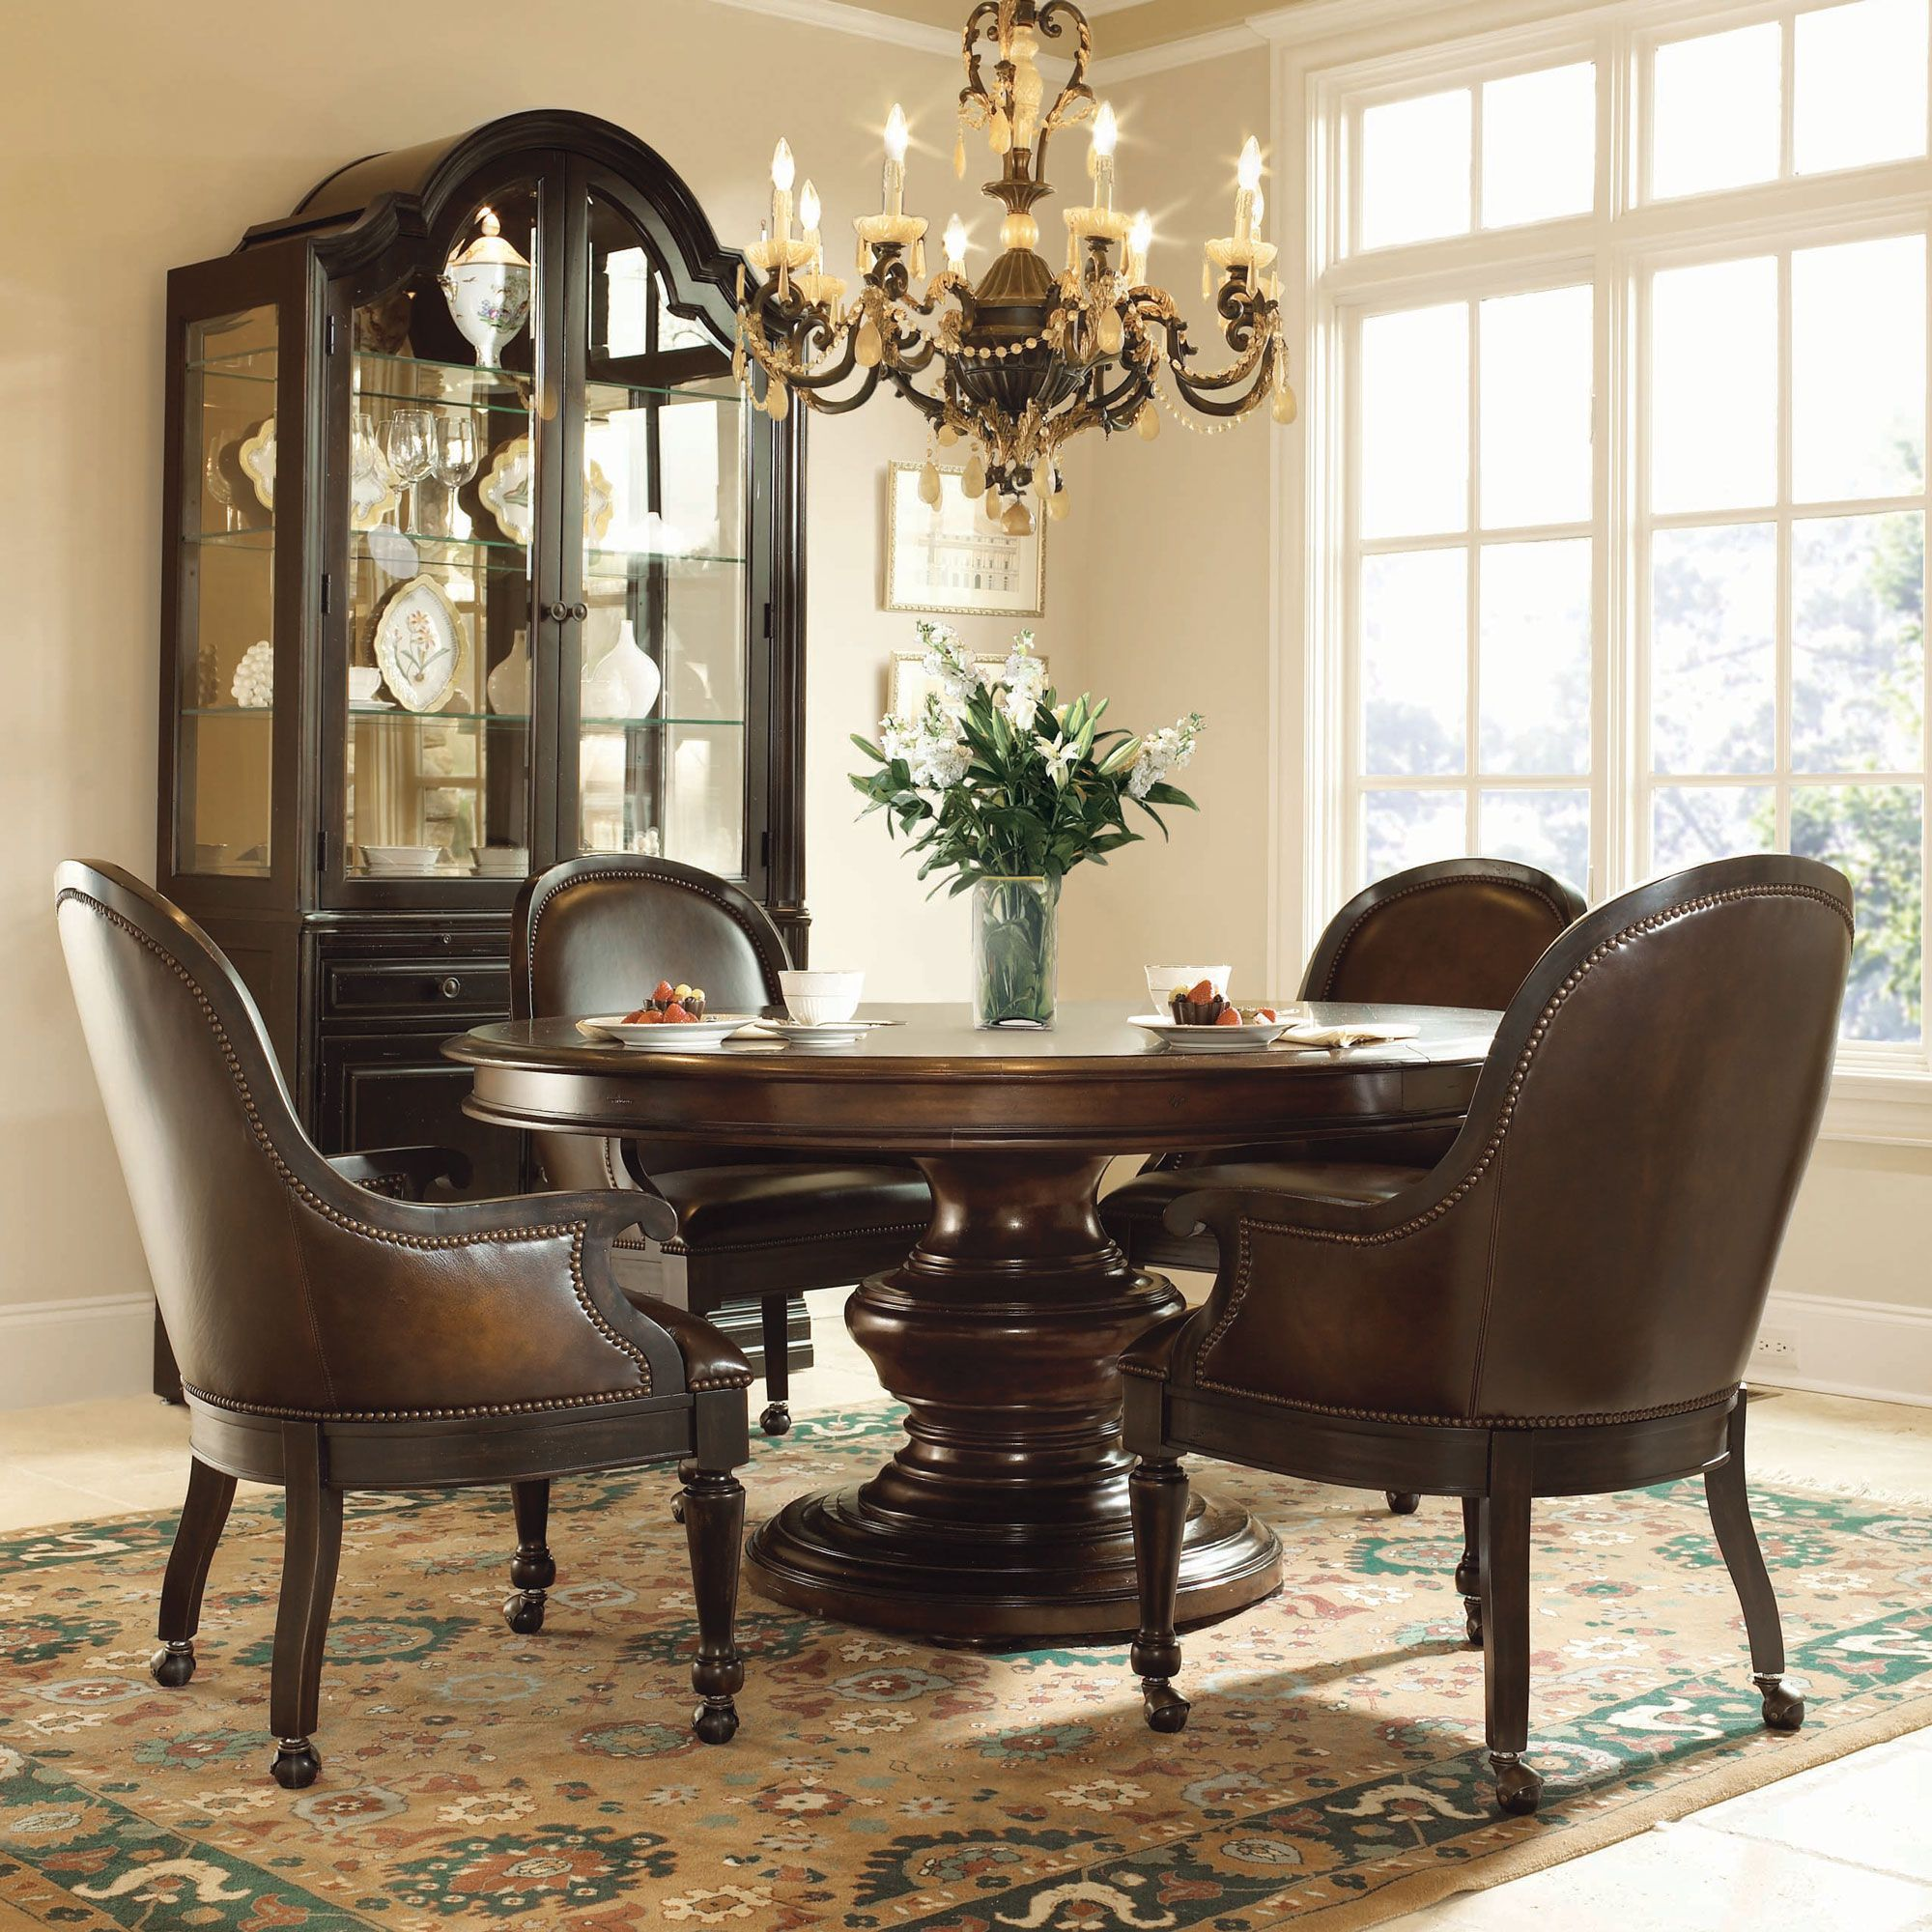 Bernhardt normandie manor 5pc round dining room set with for Dining room table with swivel chairs